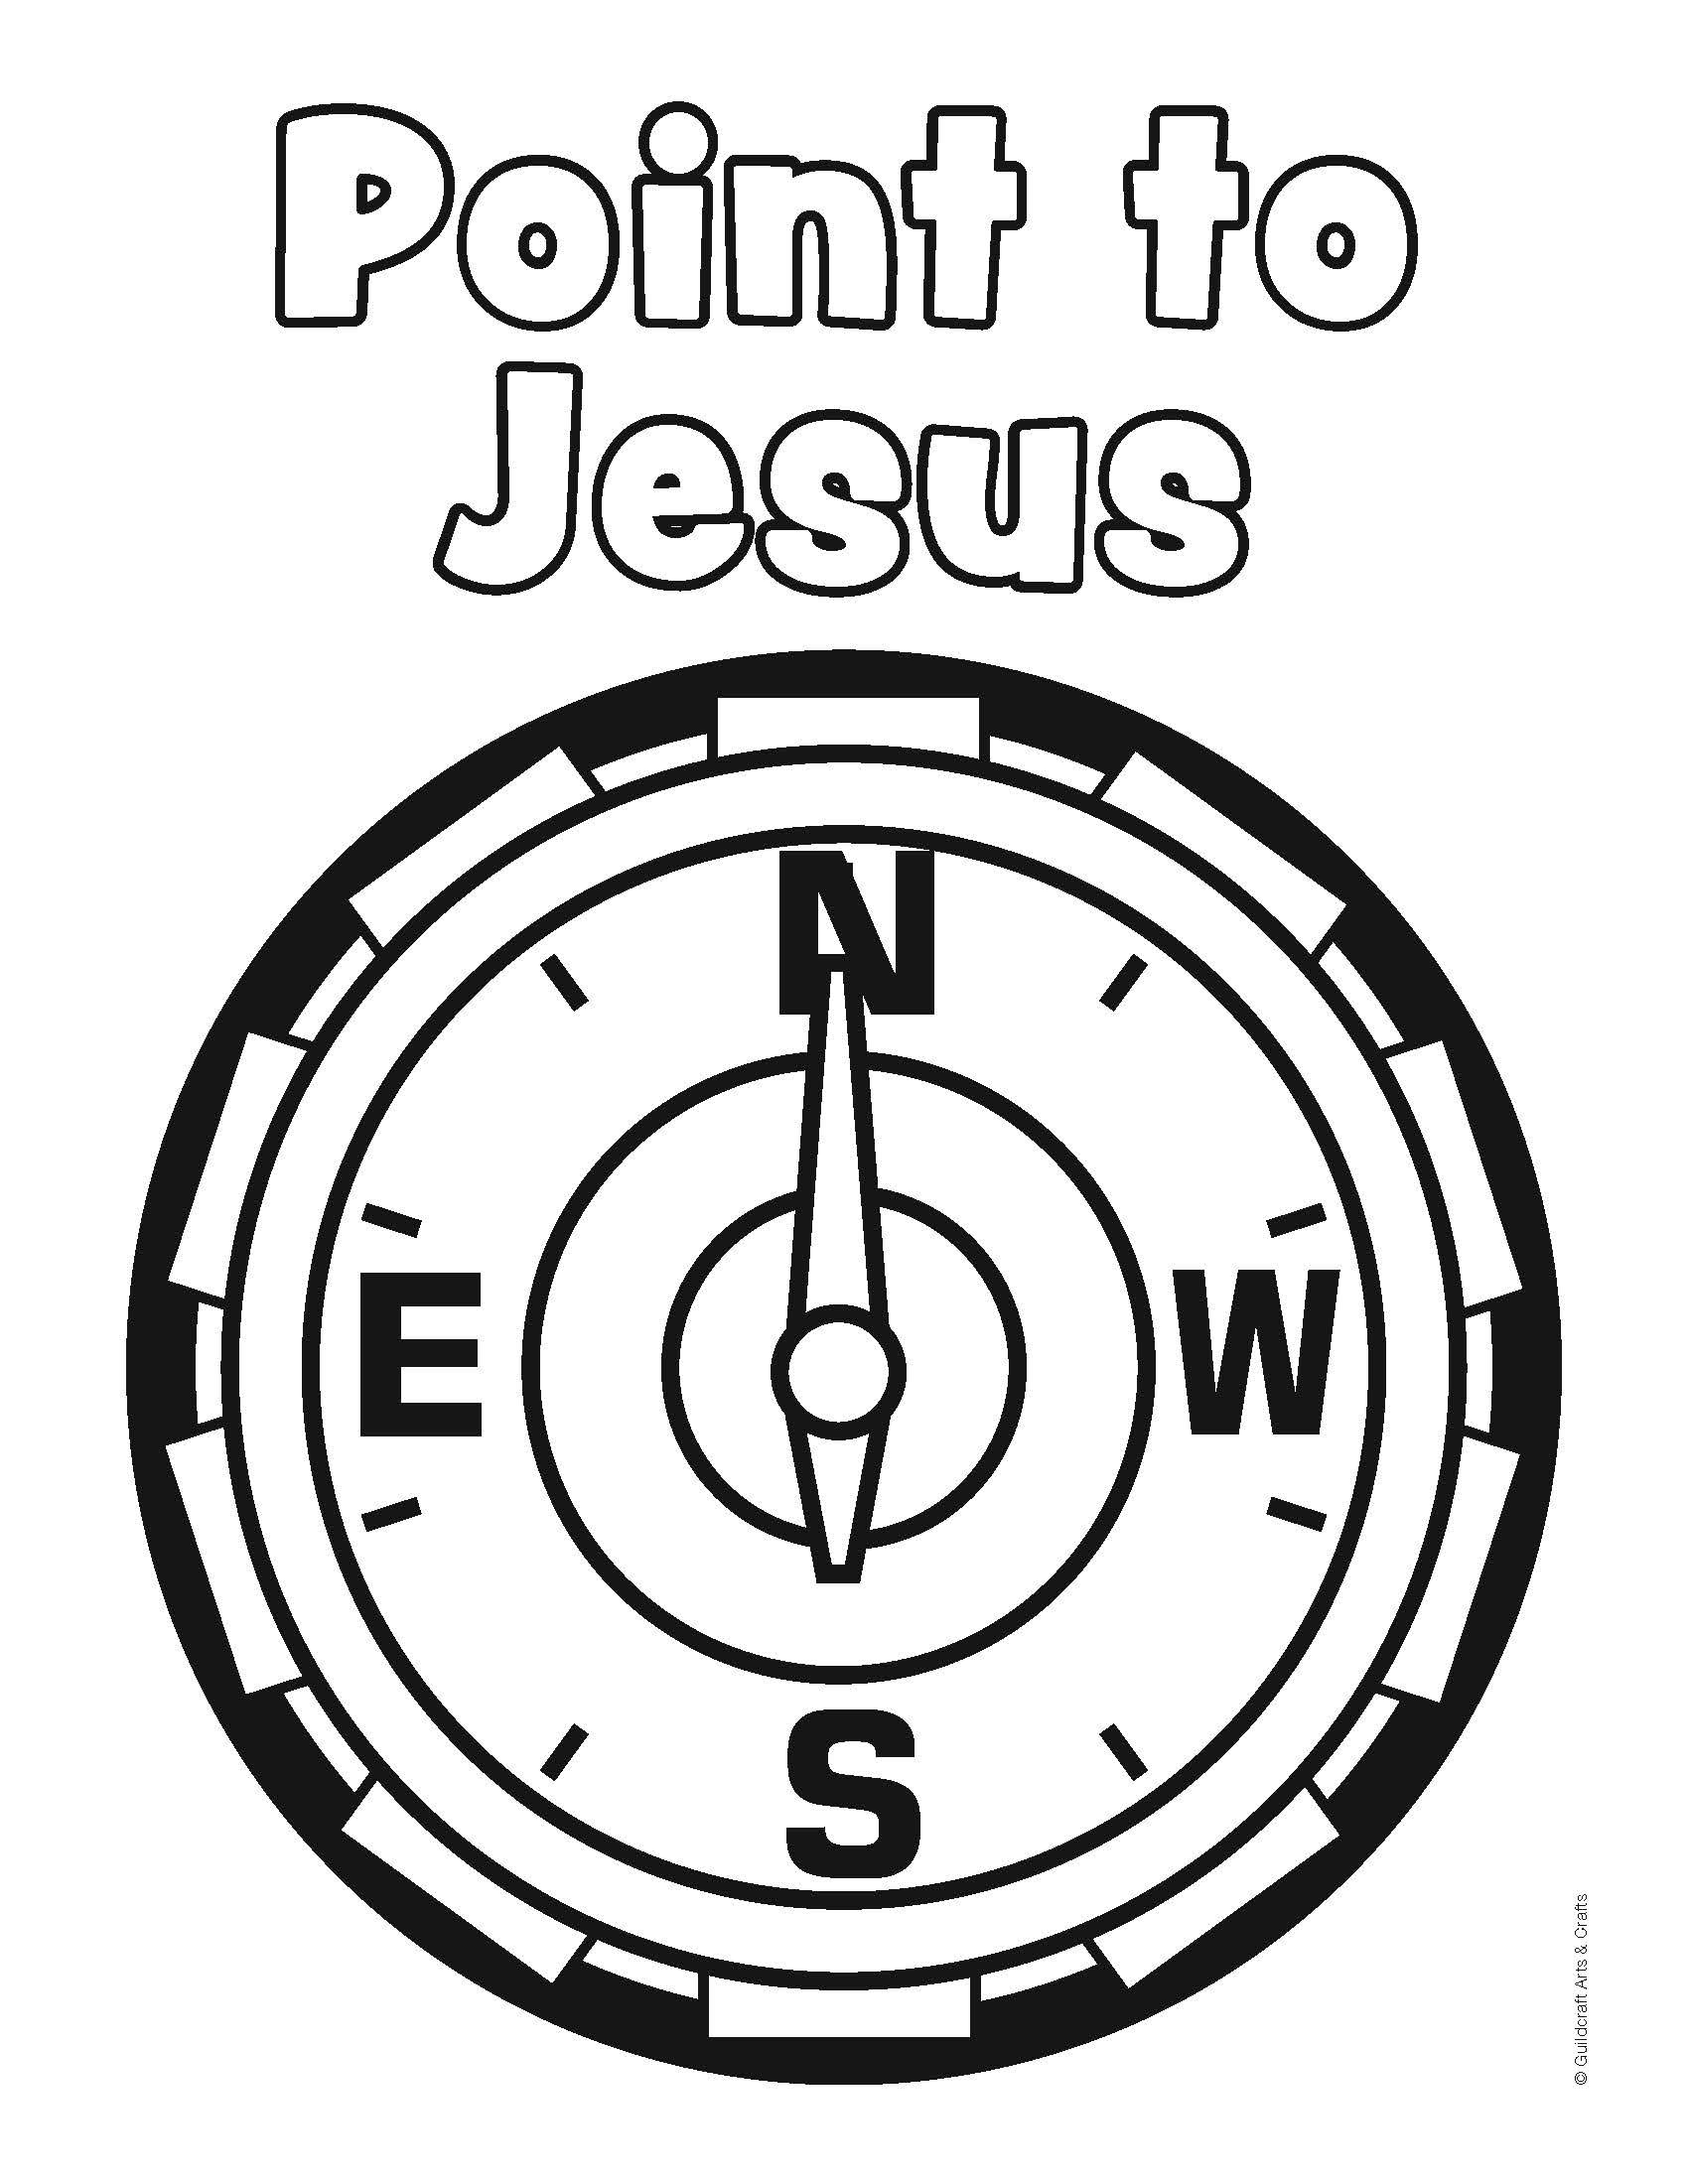 Vbs National Park Coloring Sheet Free Coloring Pages For Various Vbs Themes